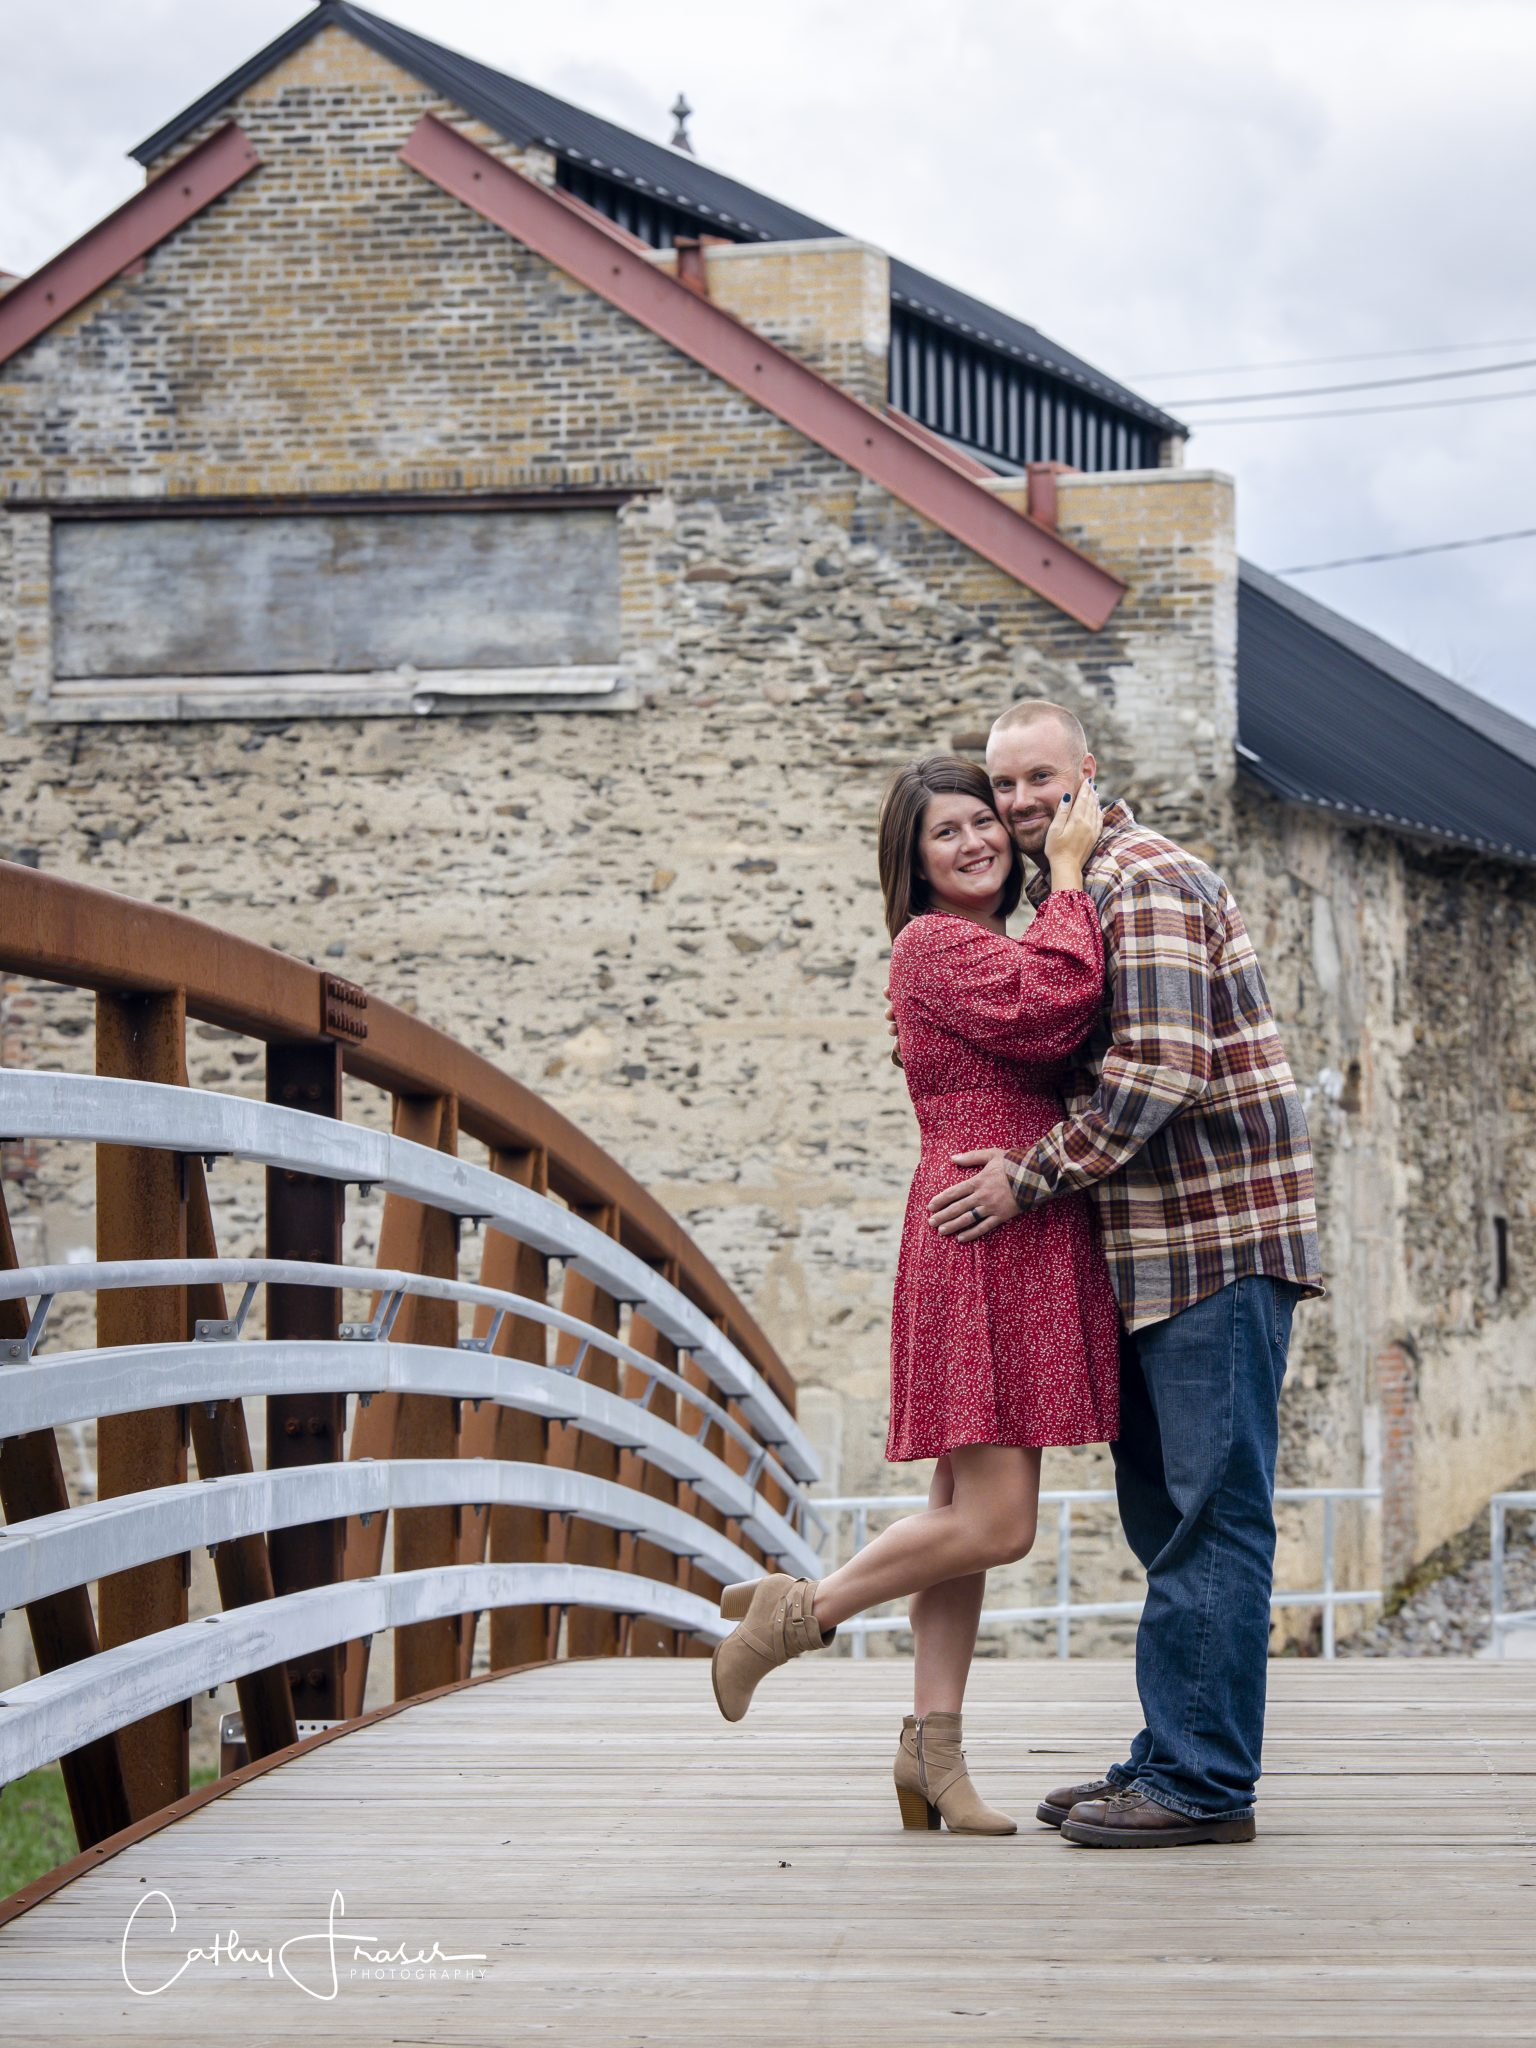 couple hugging, Penn Yan, New York, natural light, husband and wife on footbridge, man in plaid flannel, jeans, woman in red dress